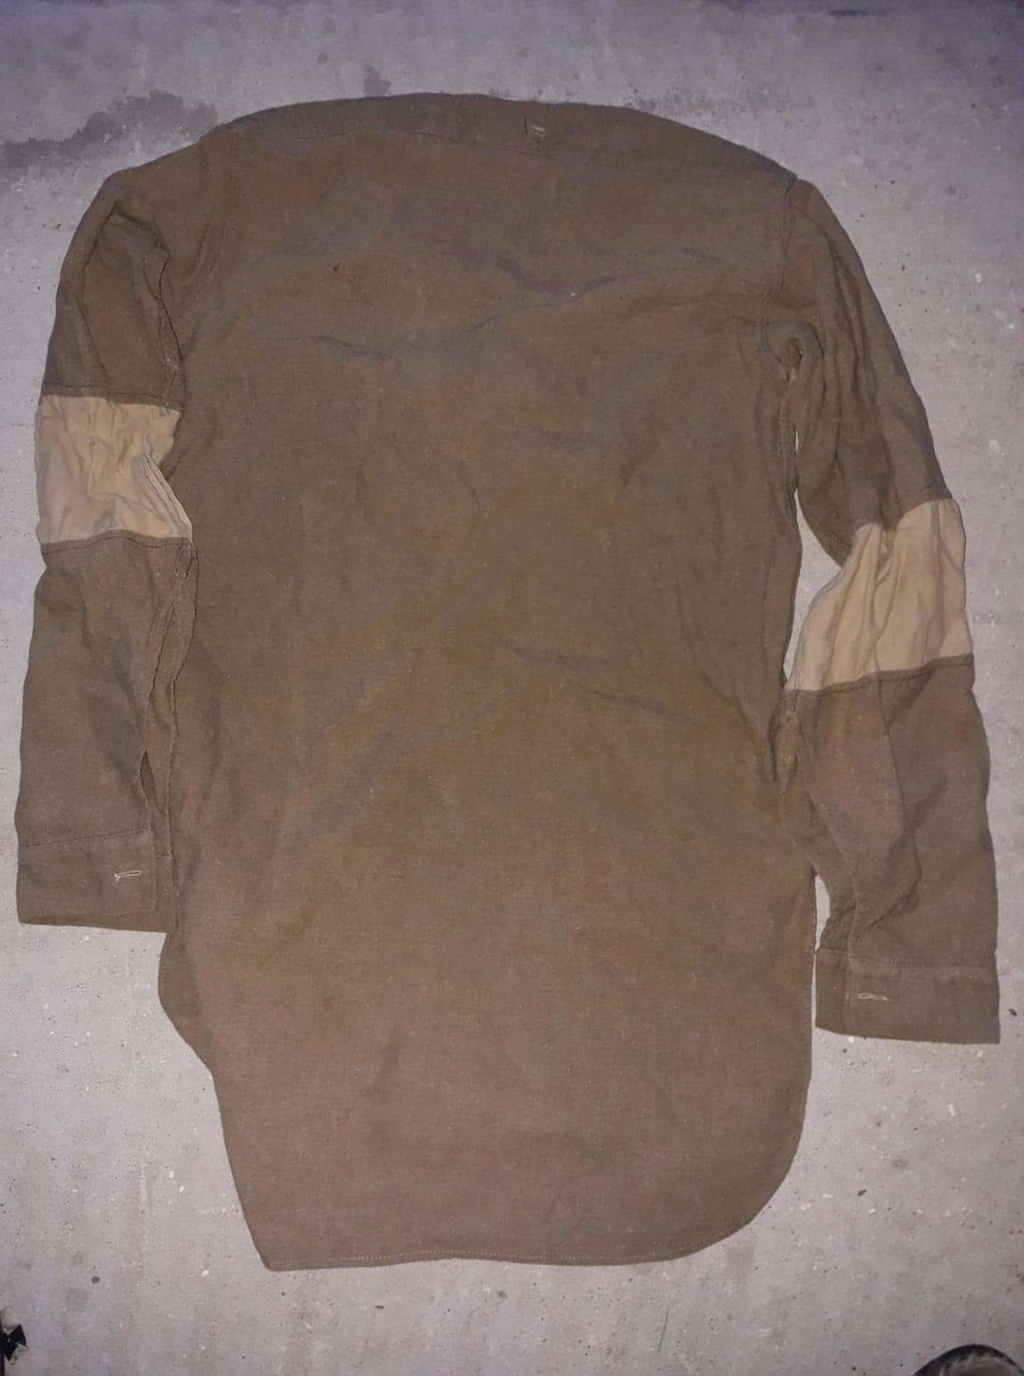 Chemise troupe anglaise seconde guerre ? Receiv26